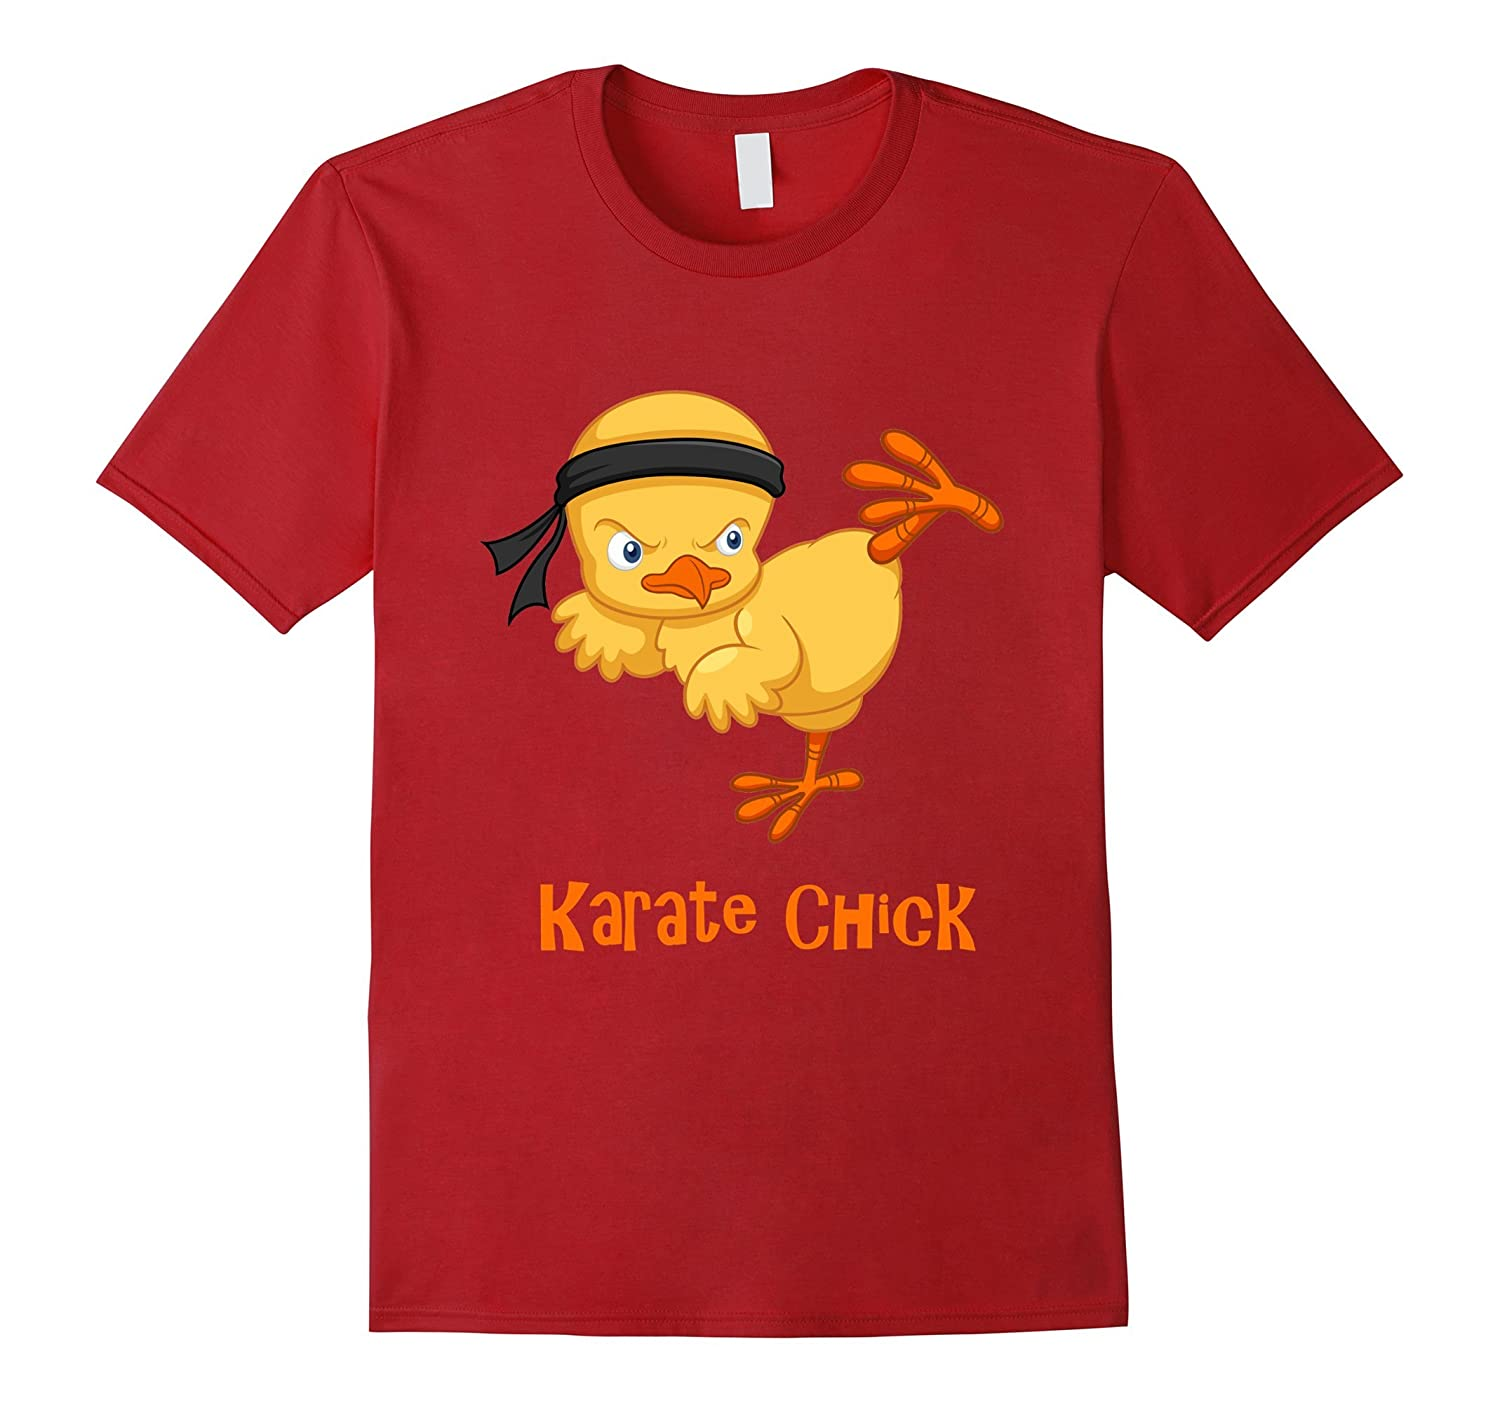 Funny Karate Chick T-shirt for Karate lovers-TH